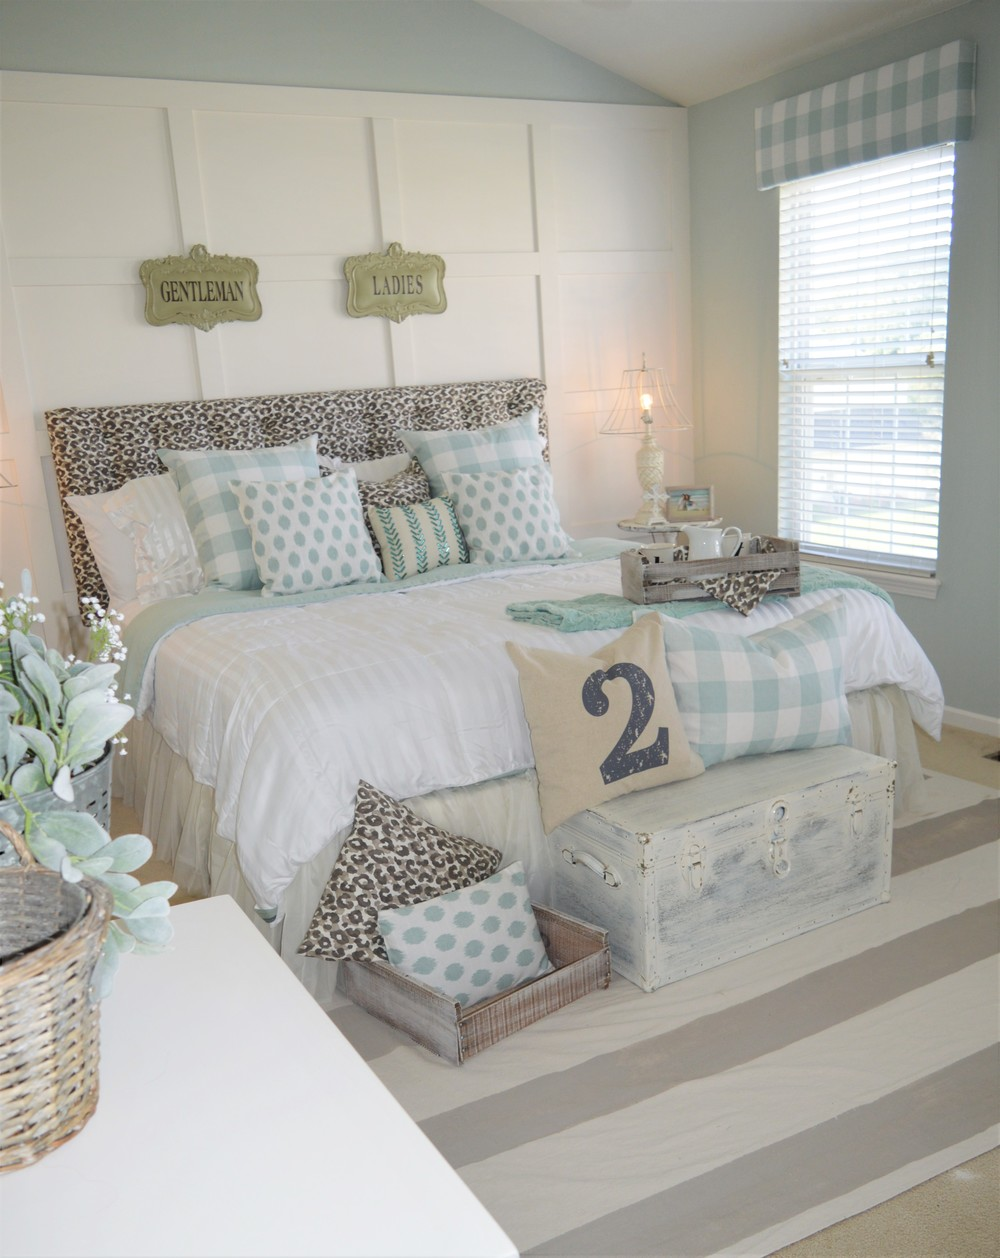 Master Bedroom Before the modern farmhouse takeover!